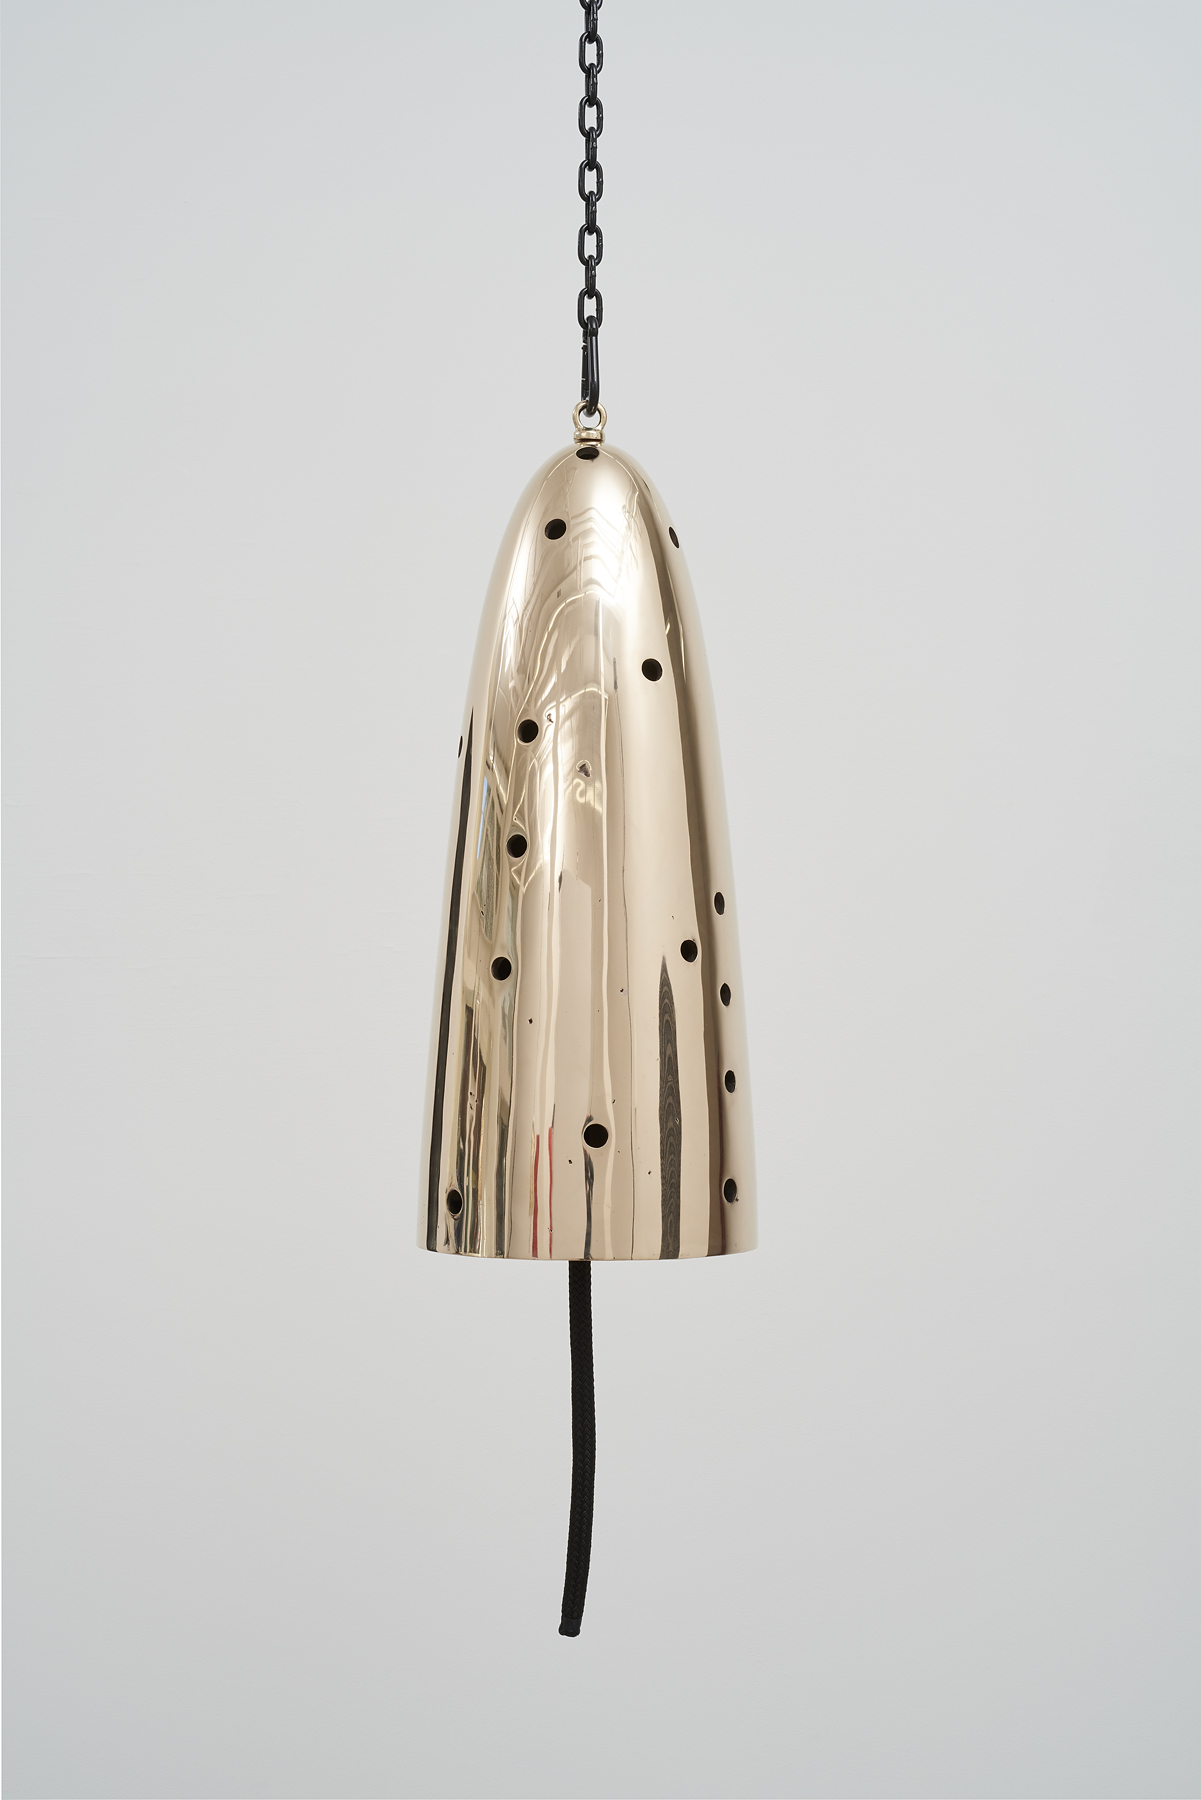 Davina Semo,  Messenger , 2019, Polished and patinated cast bronze bell, whipped., nylon line, wooden clapper, powder-coated chain, hardware, Bell: 32 inches tall x 13 inches diameter / 81 cm tall x 33 cm diameter, overall dimensions variable